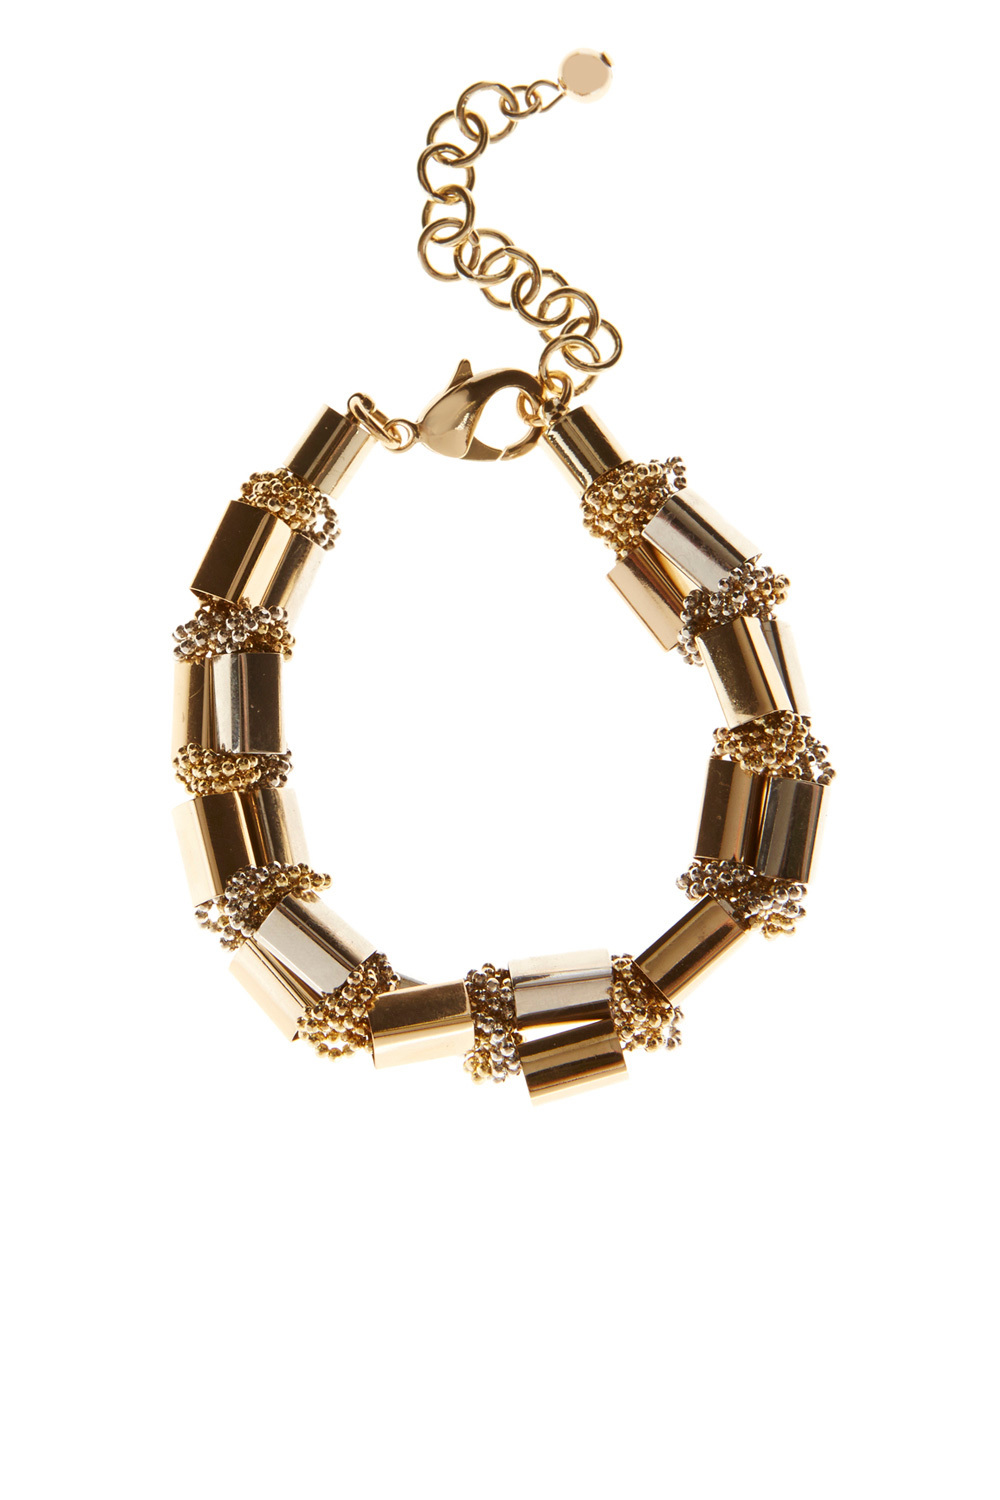 Lucia Block Bar Bracelet - predominant colour: gold; occasions: evening; style: bangle/standard; size: standard; material: chain/metal; finish: metallic; embellishment: chain/metal; season: a/w 2016; wardrobe: event